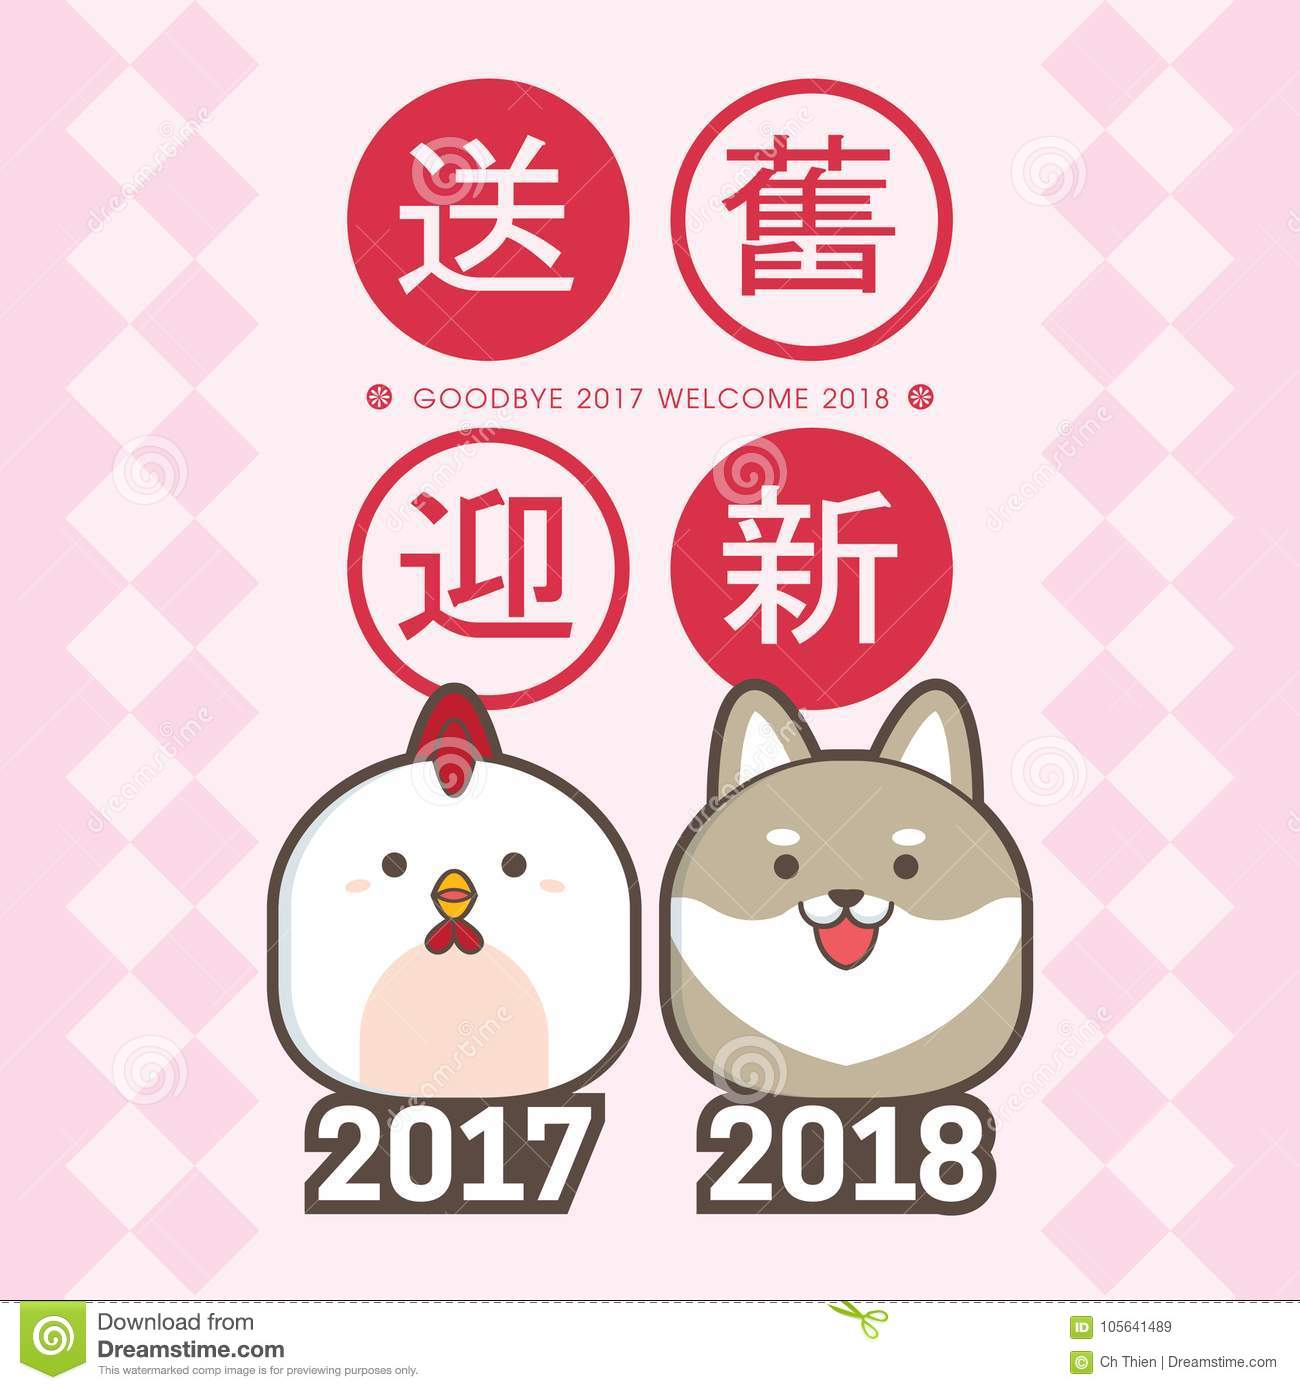 2018 chinese new year greeting card template with cute chicken puppy translation send off the old year 2017 and welcome the new year 2018